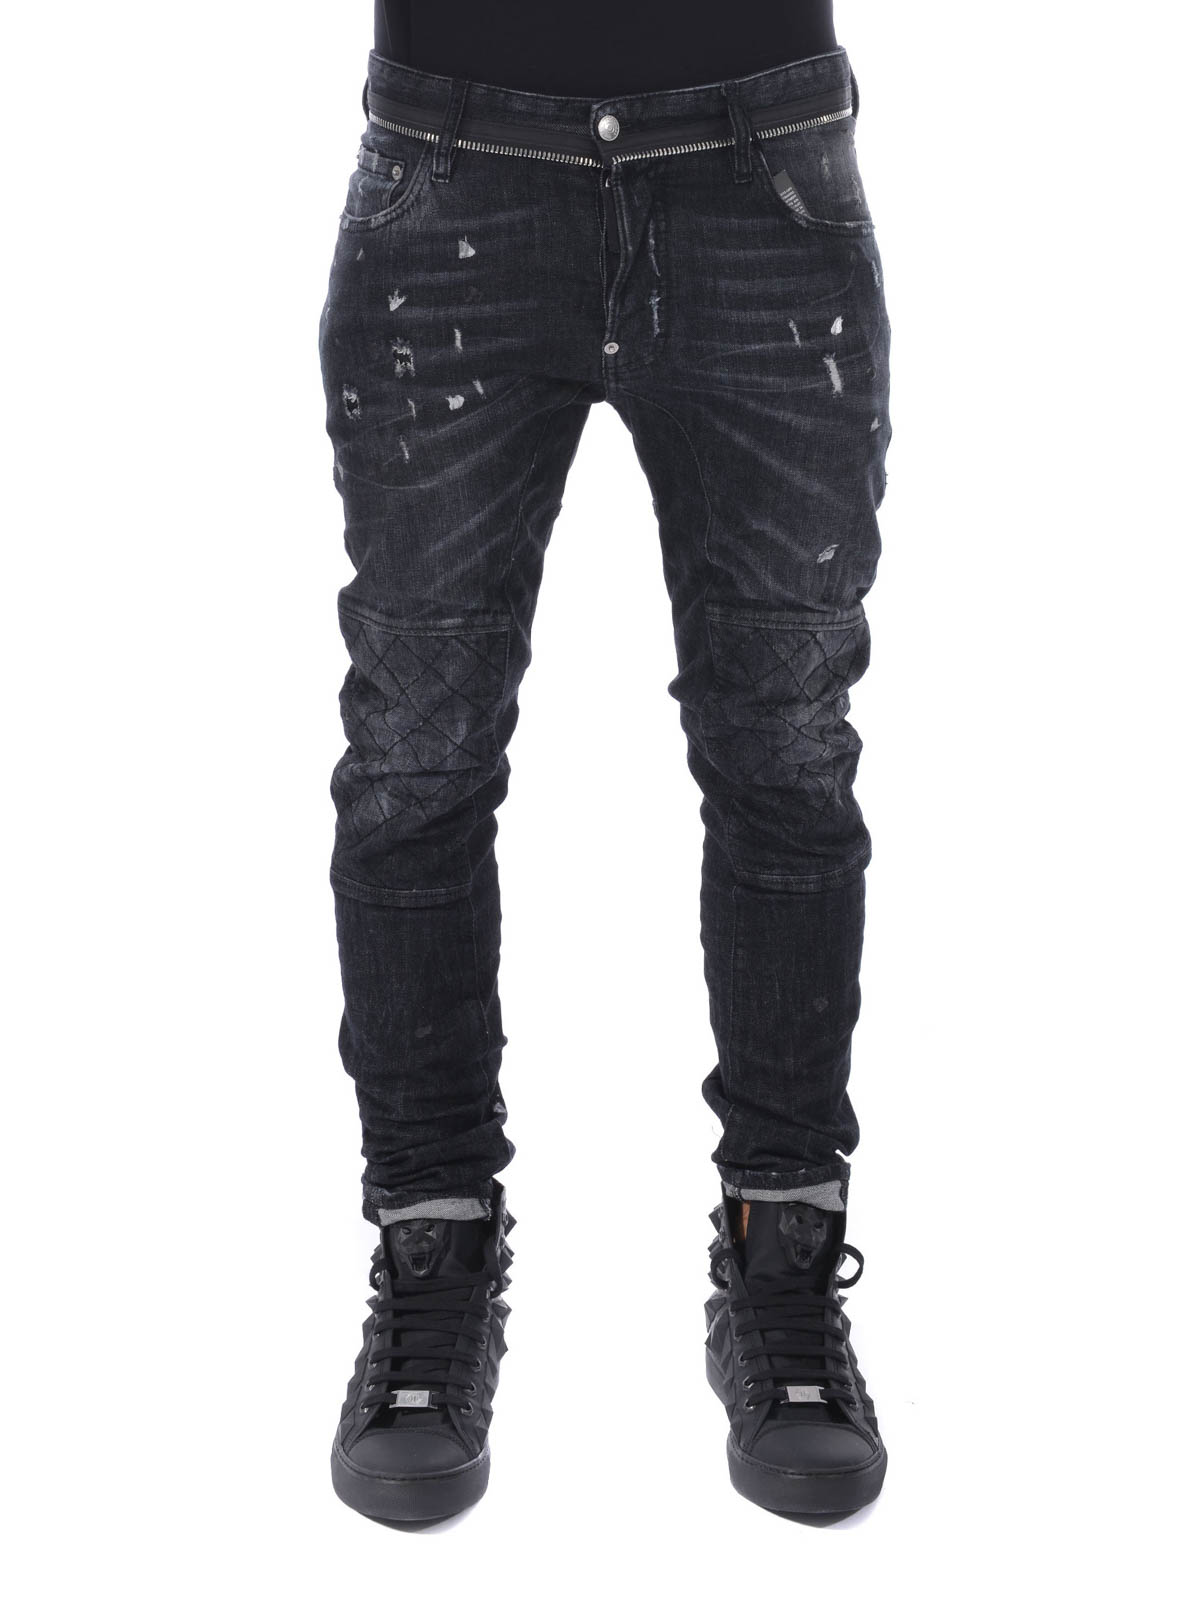 dsquared2 jean skinny noir pour homme jeans skinny s74la0840 s30400 900. Black Bedroom Furniture Sets. Home Design Ideas